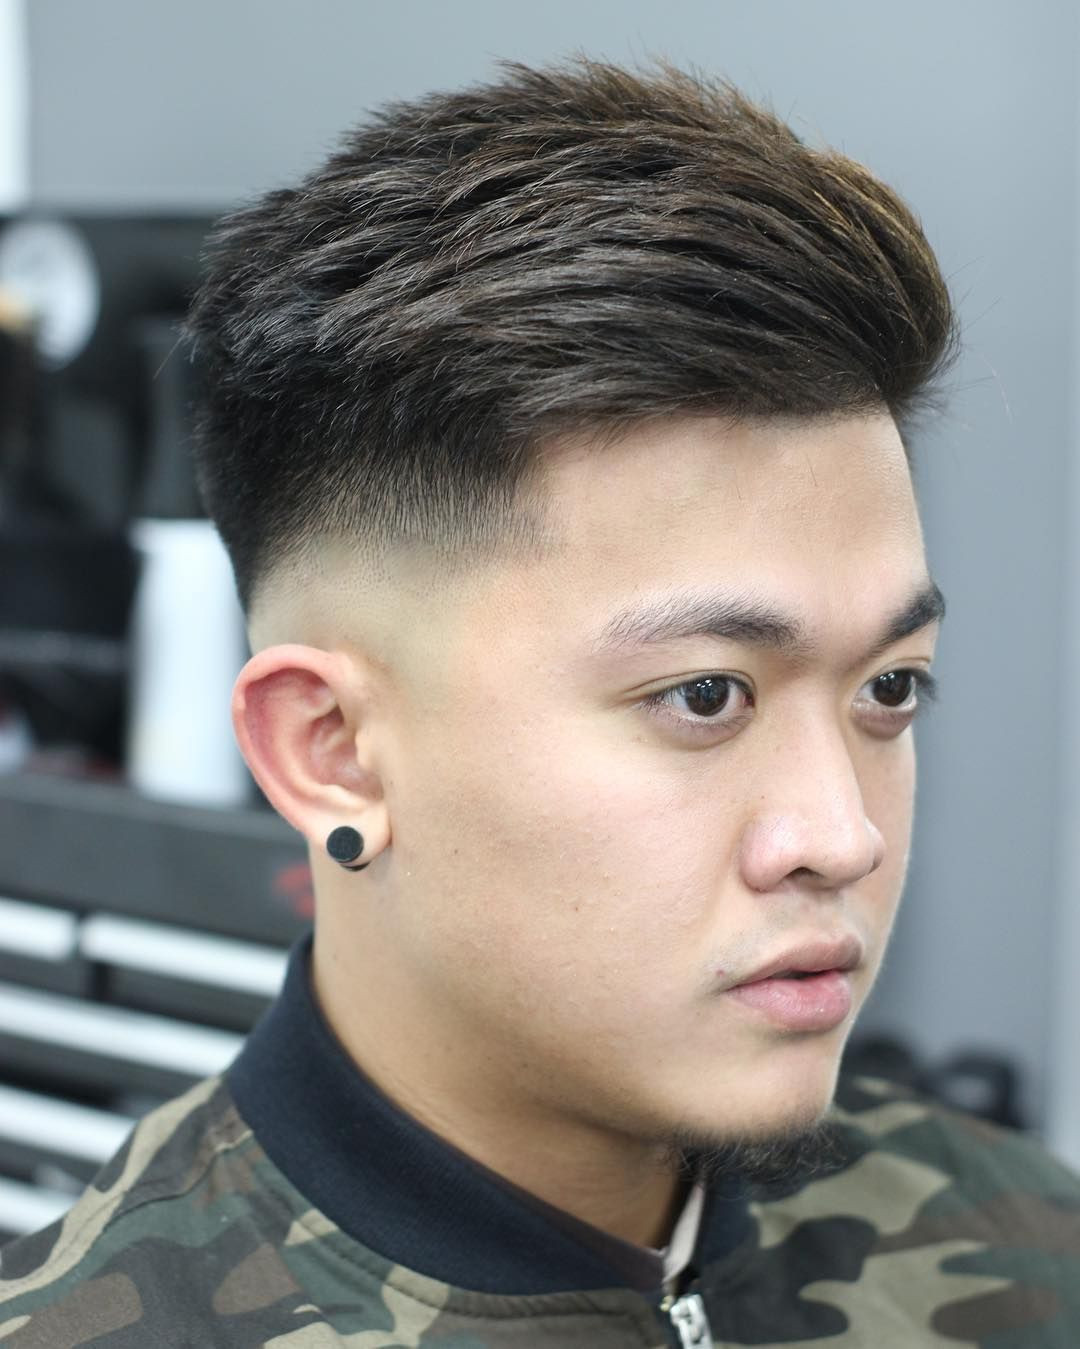 37+ popular asian hairstyles for men - sensod - create. connect. brand.